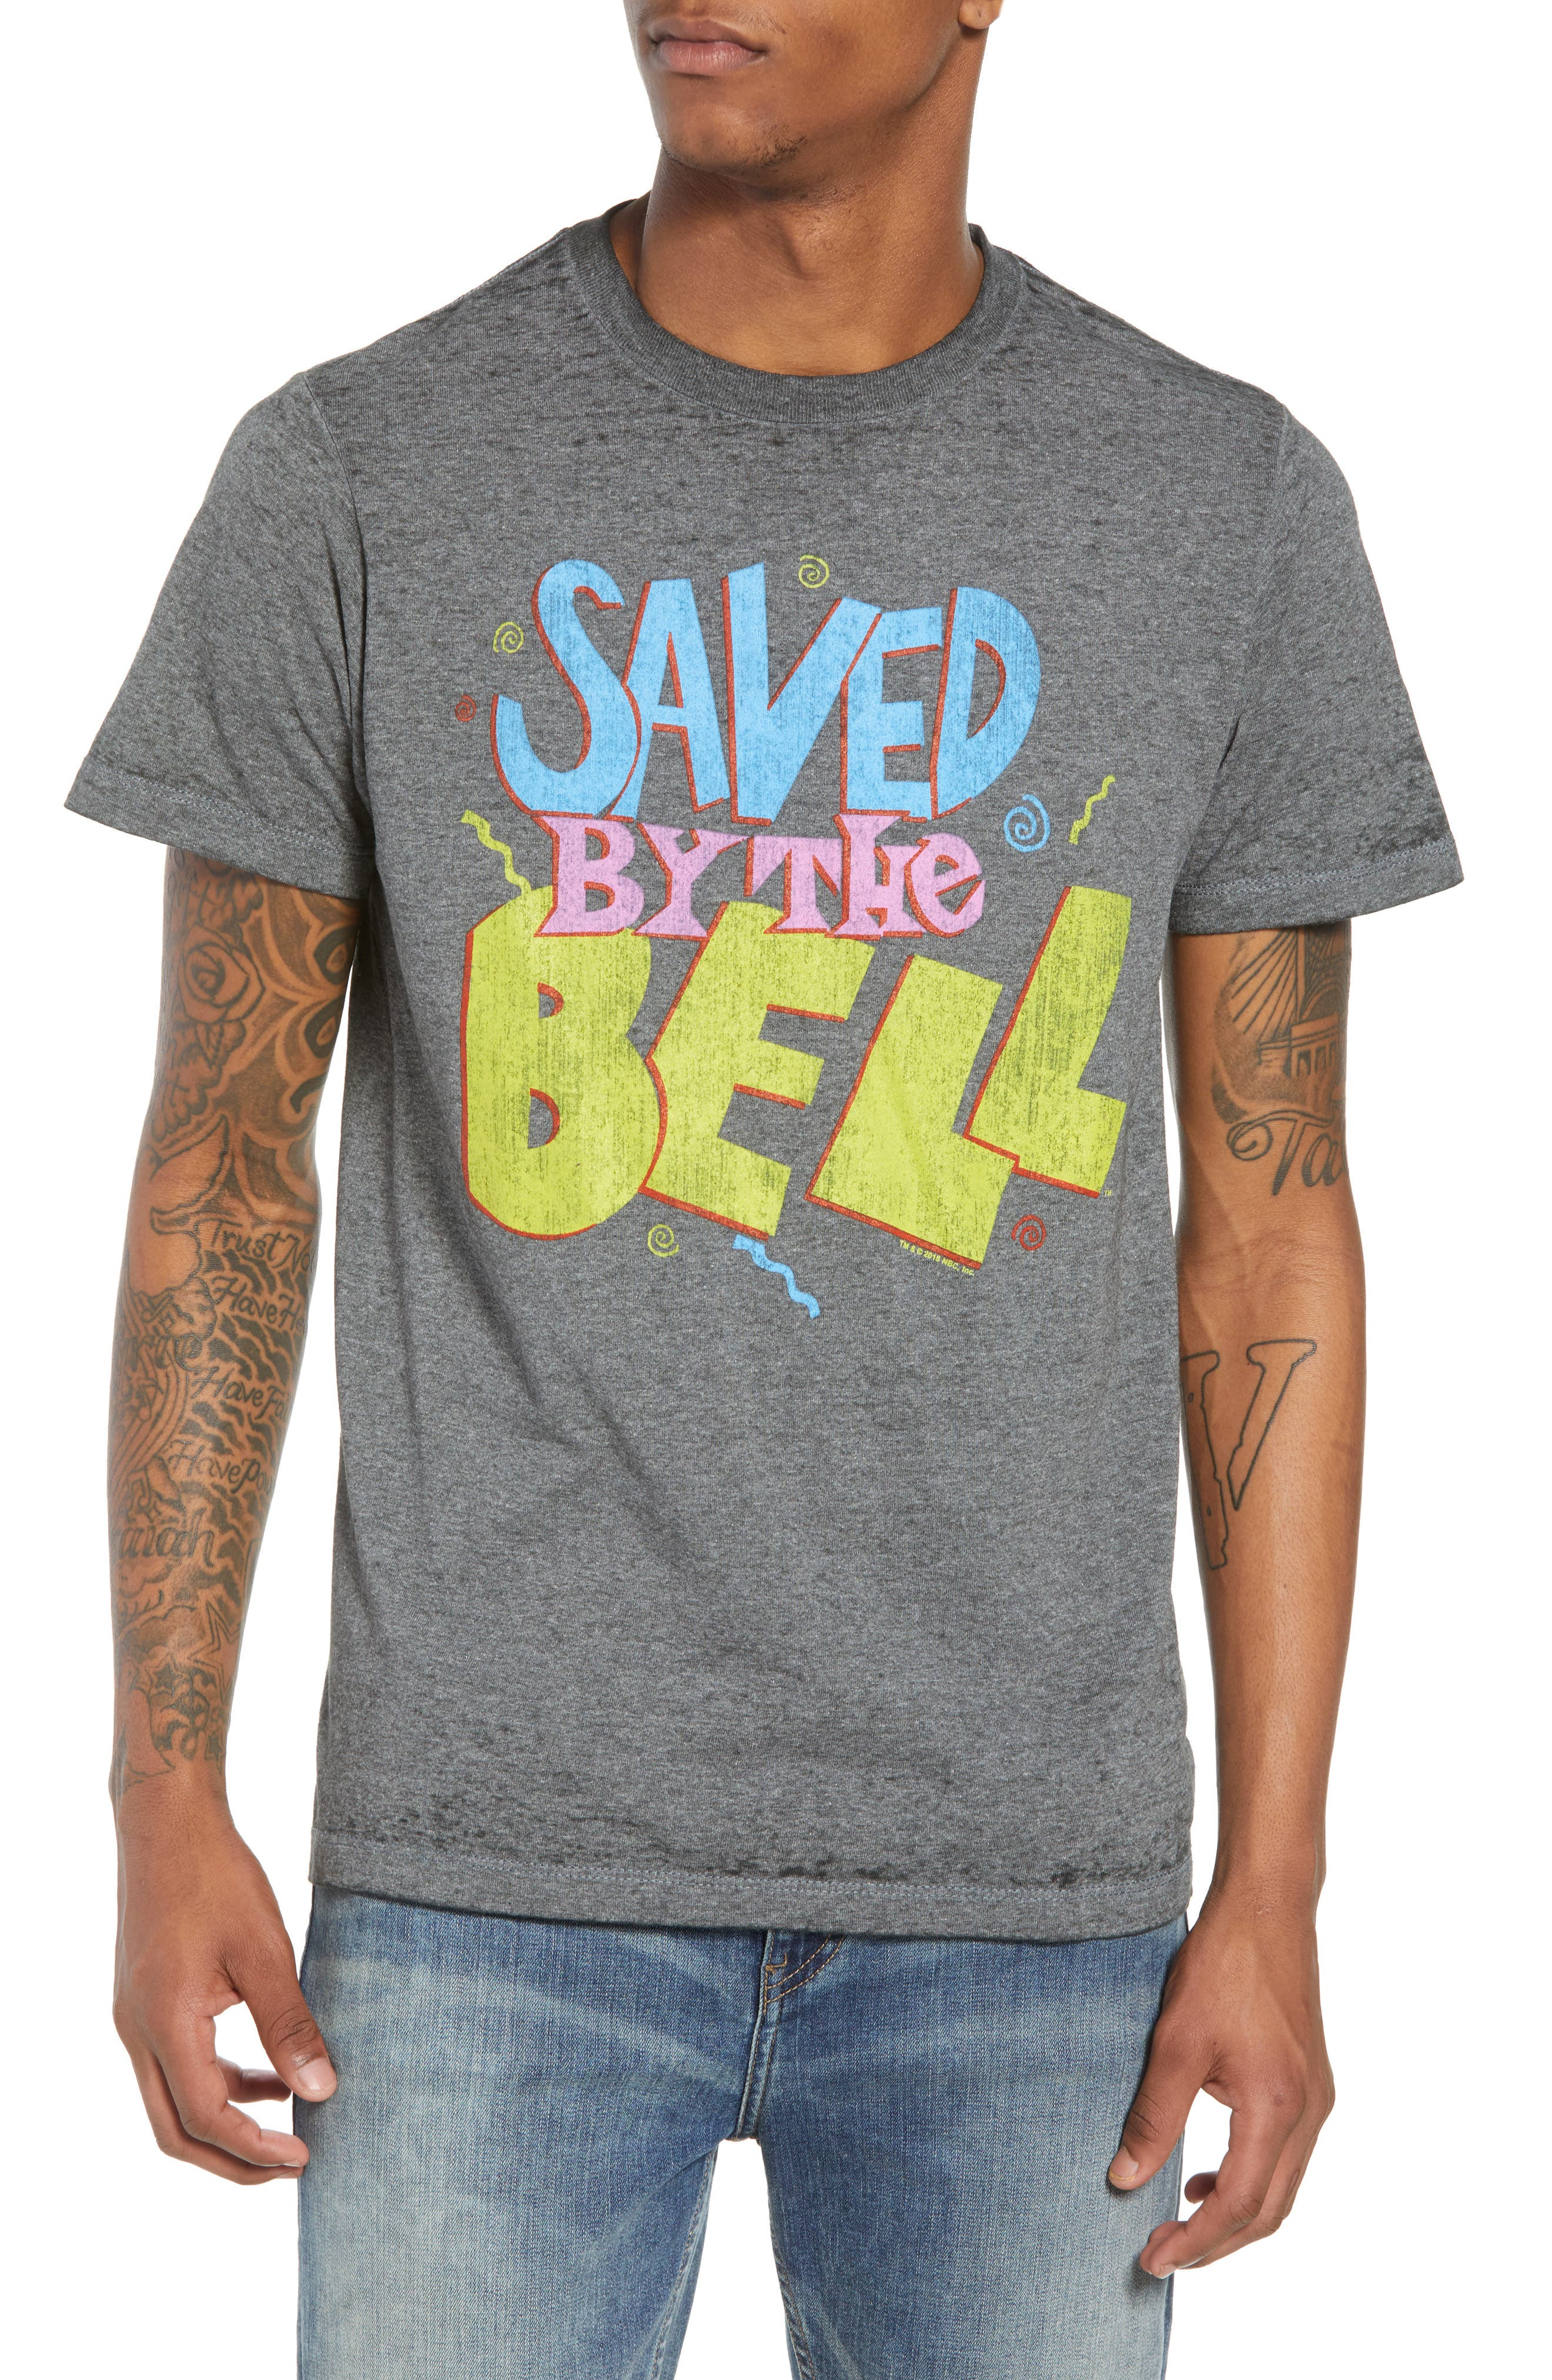 The Rail Saved by the Bell T-Shirt